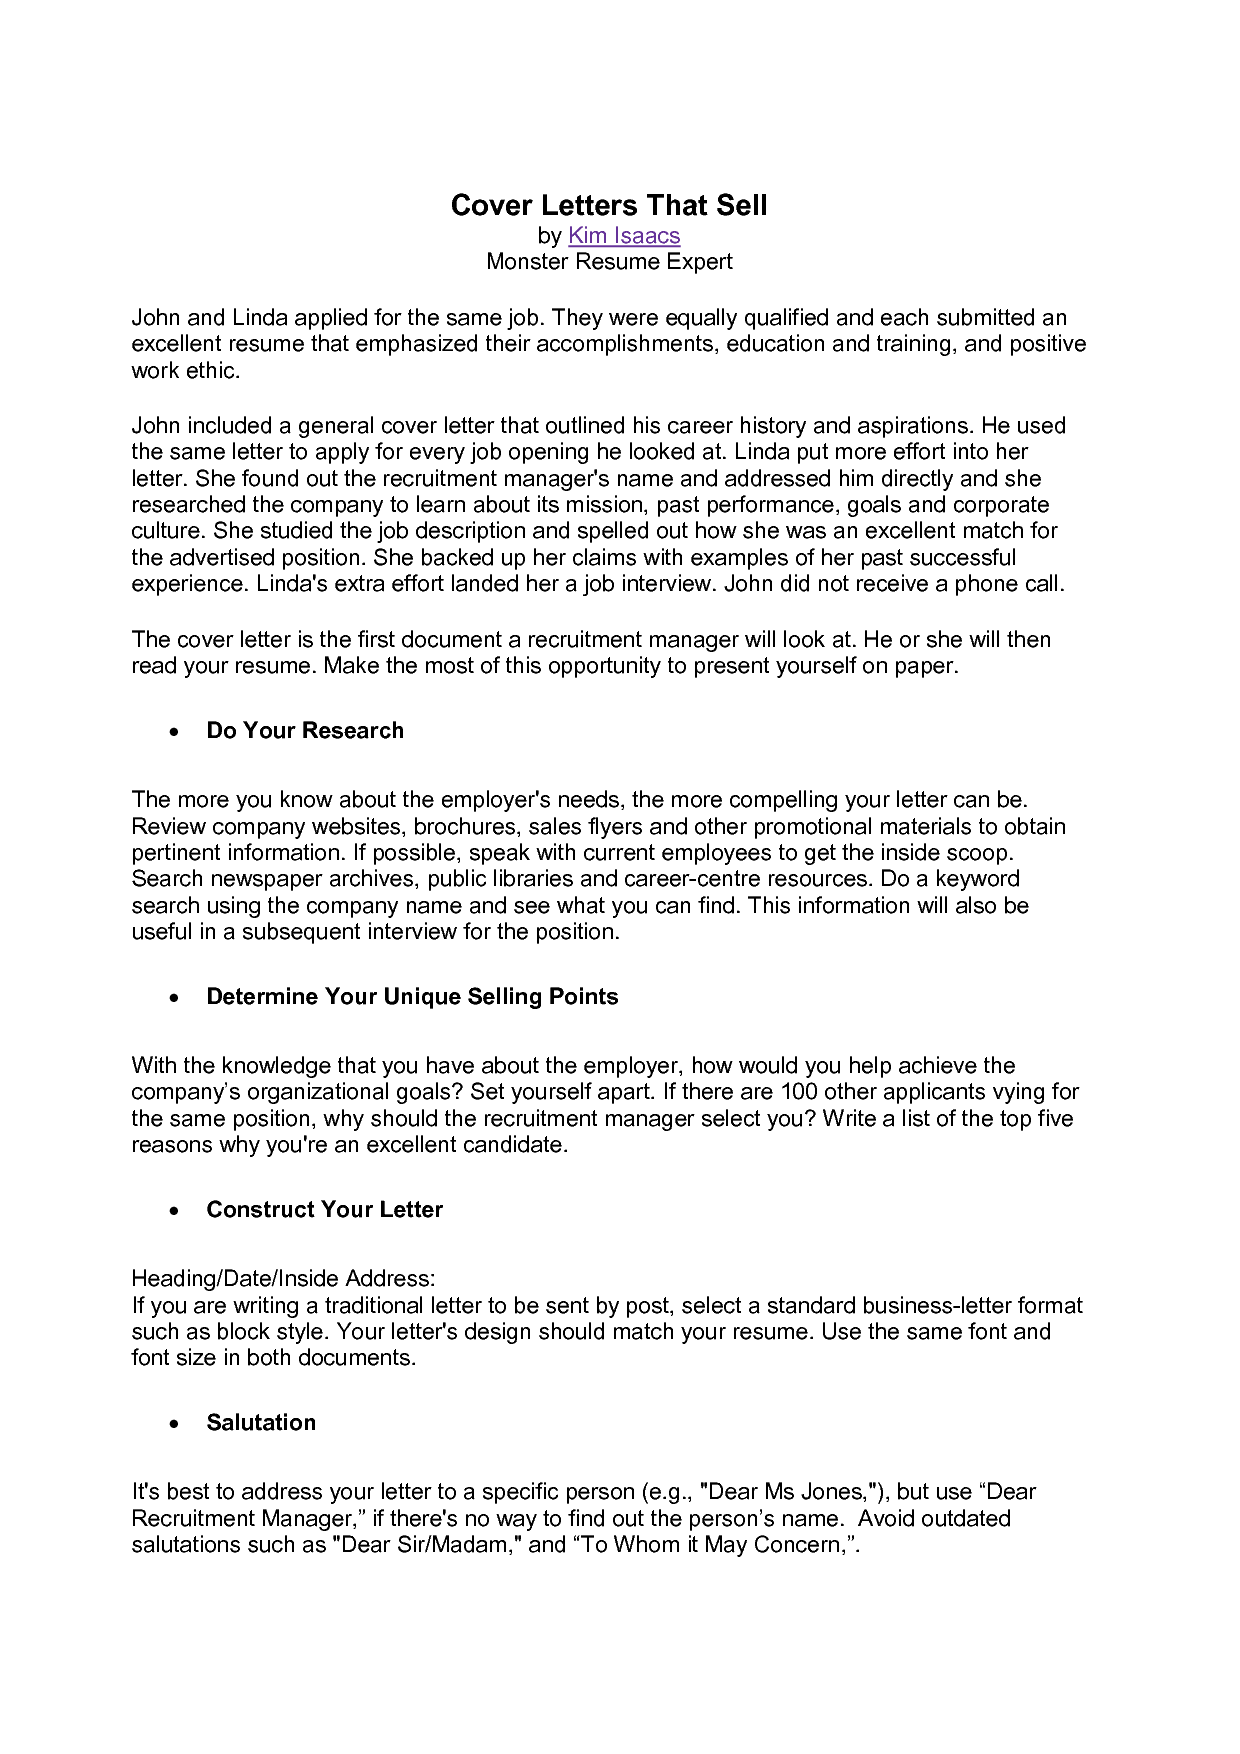 free covering letter free sample resume template cover letter and writing tips write - Tips On Writing A Cover Letter